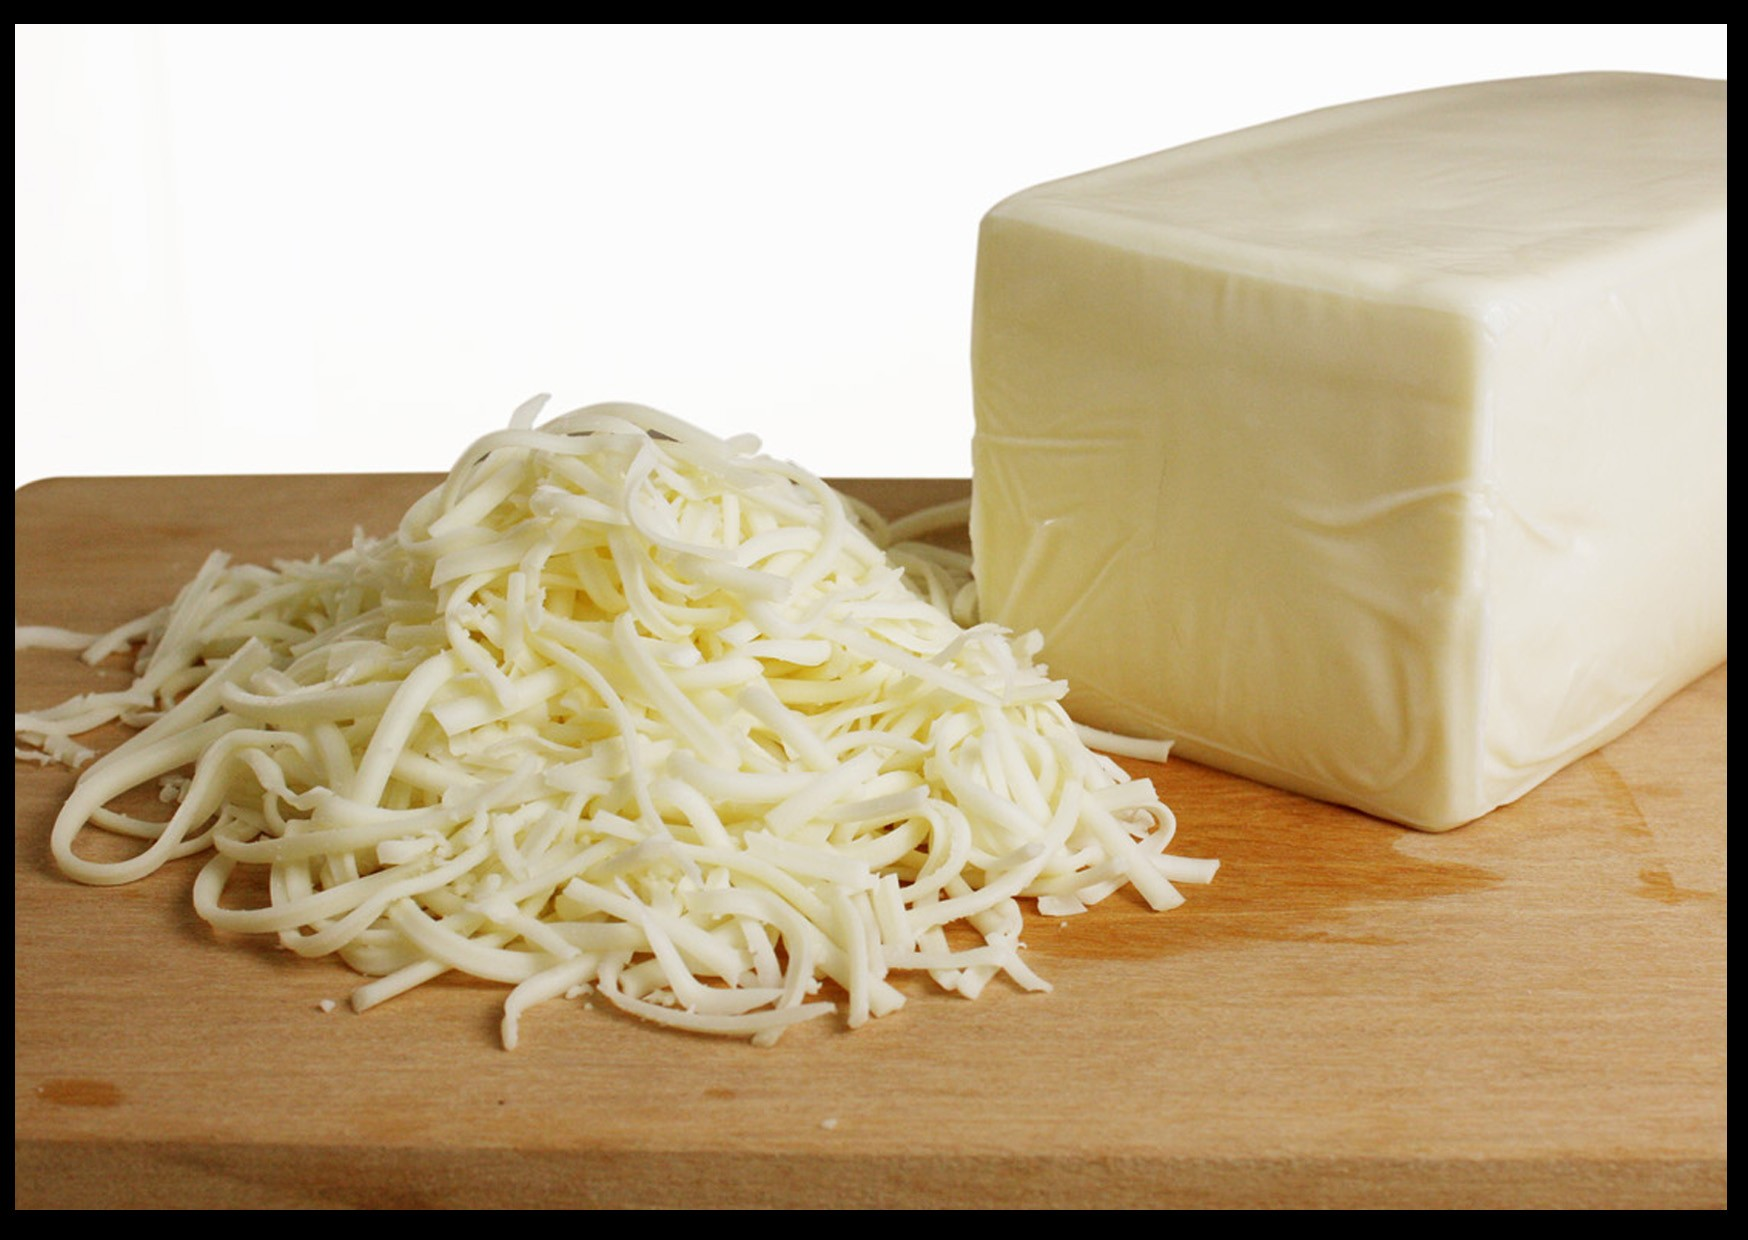 Cheese mozzarella, as well as from what do